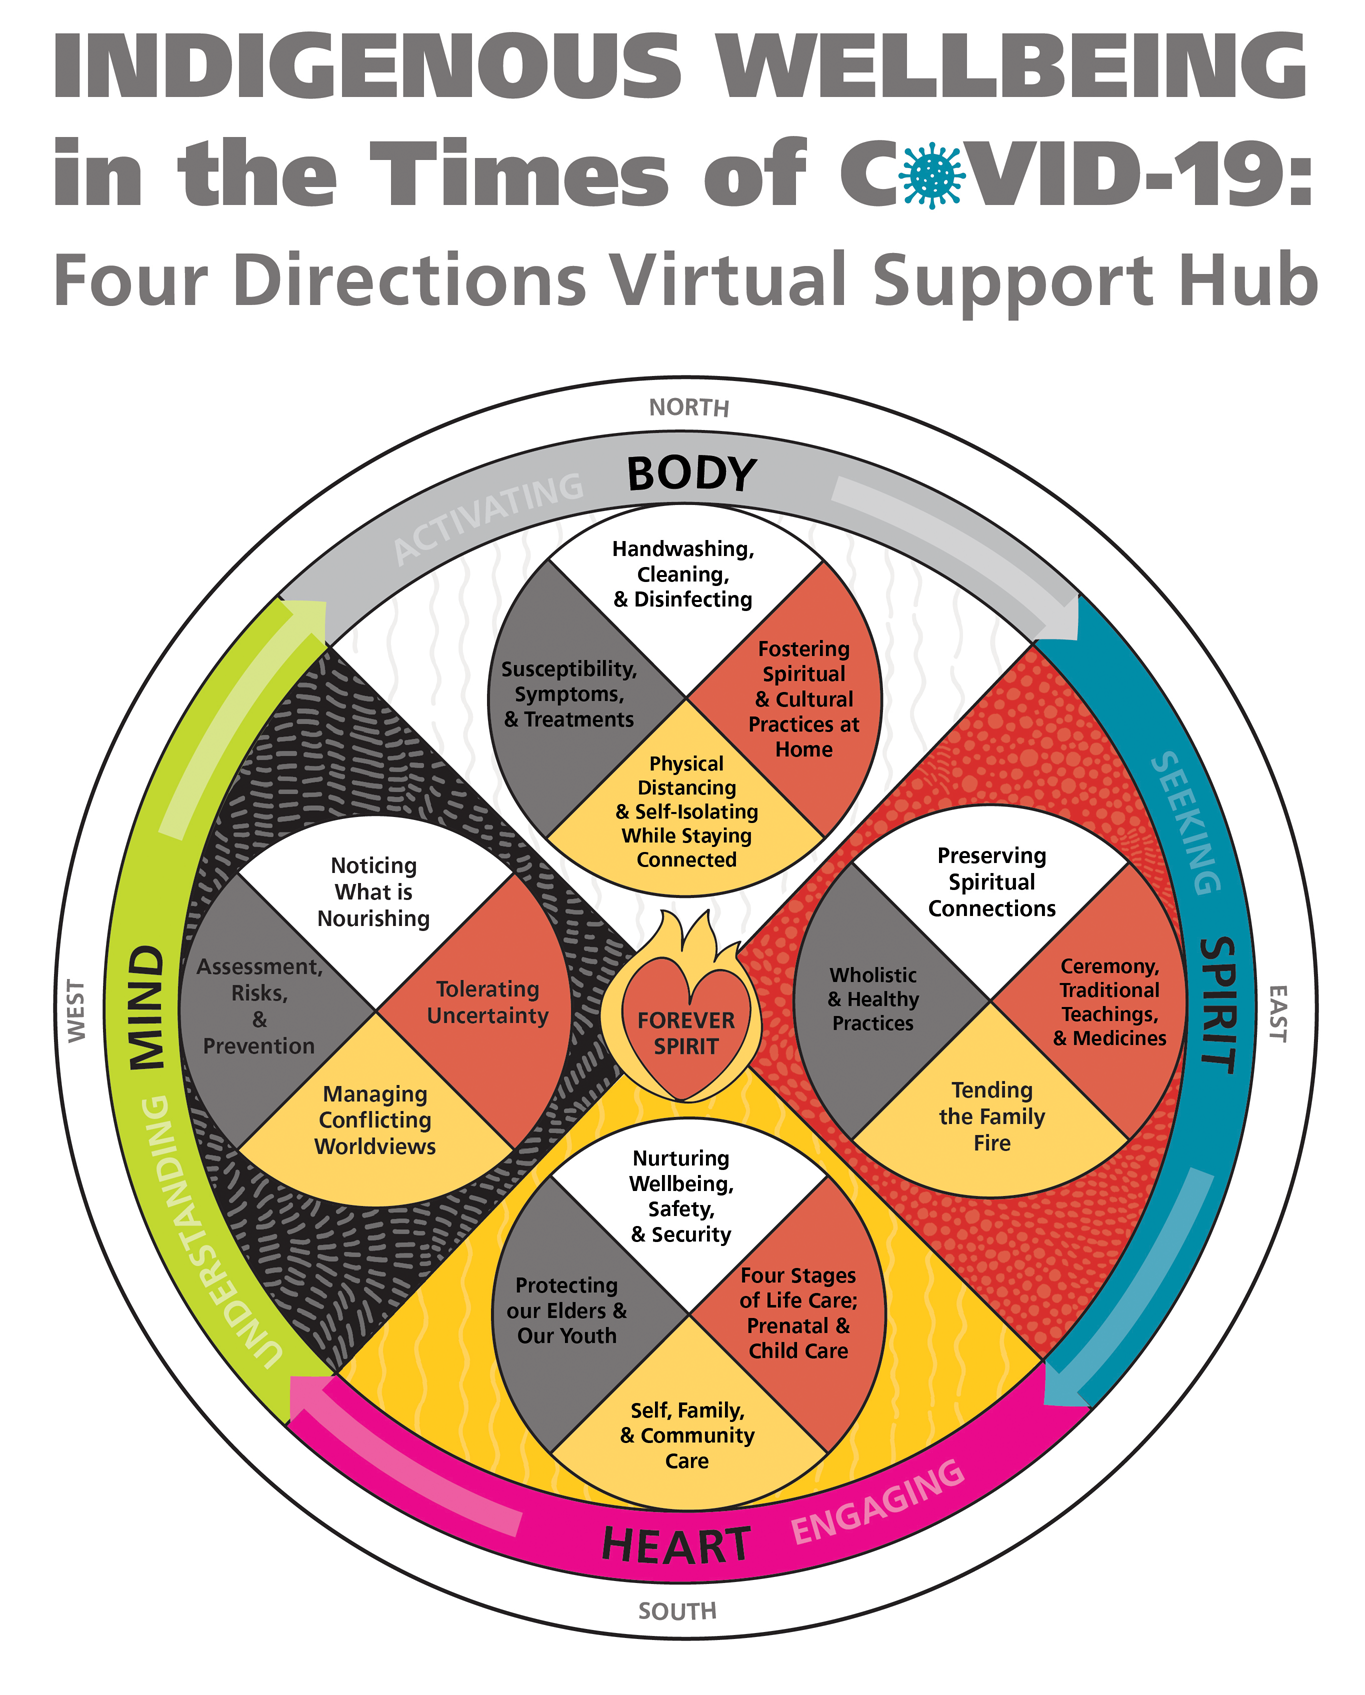 Indigenous wellbeing in the times of COVID-19: Four directions virtual support hub